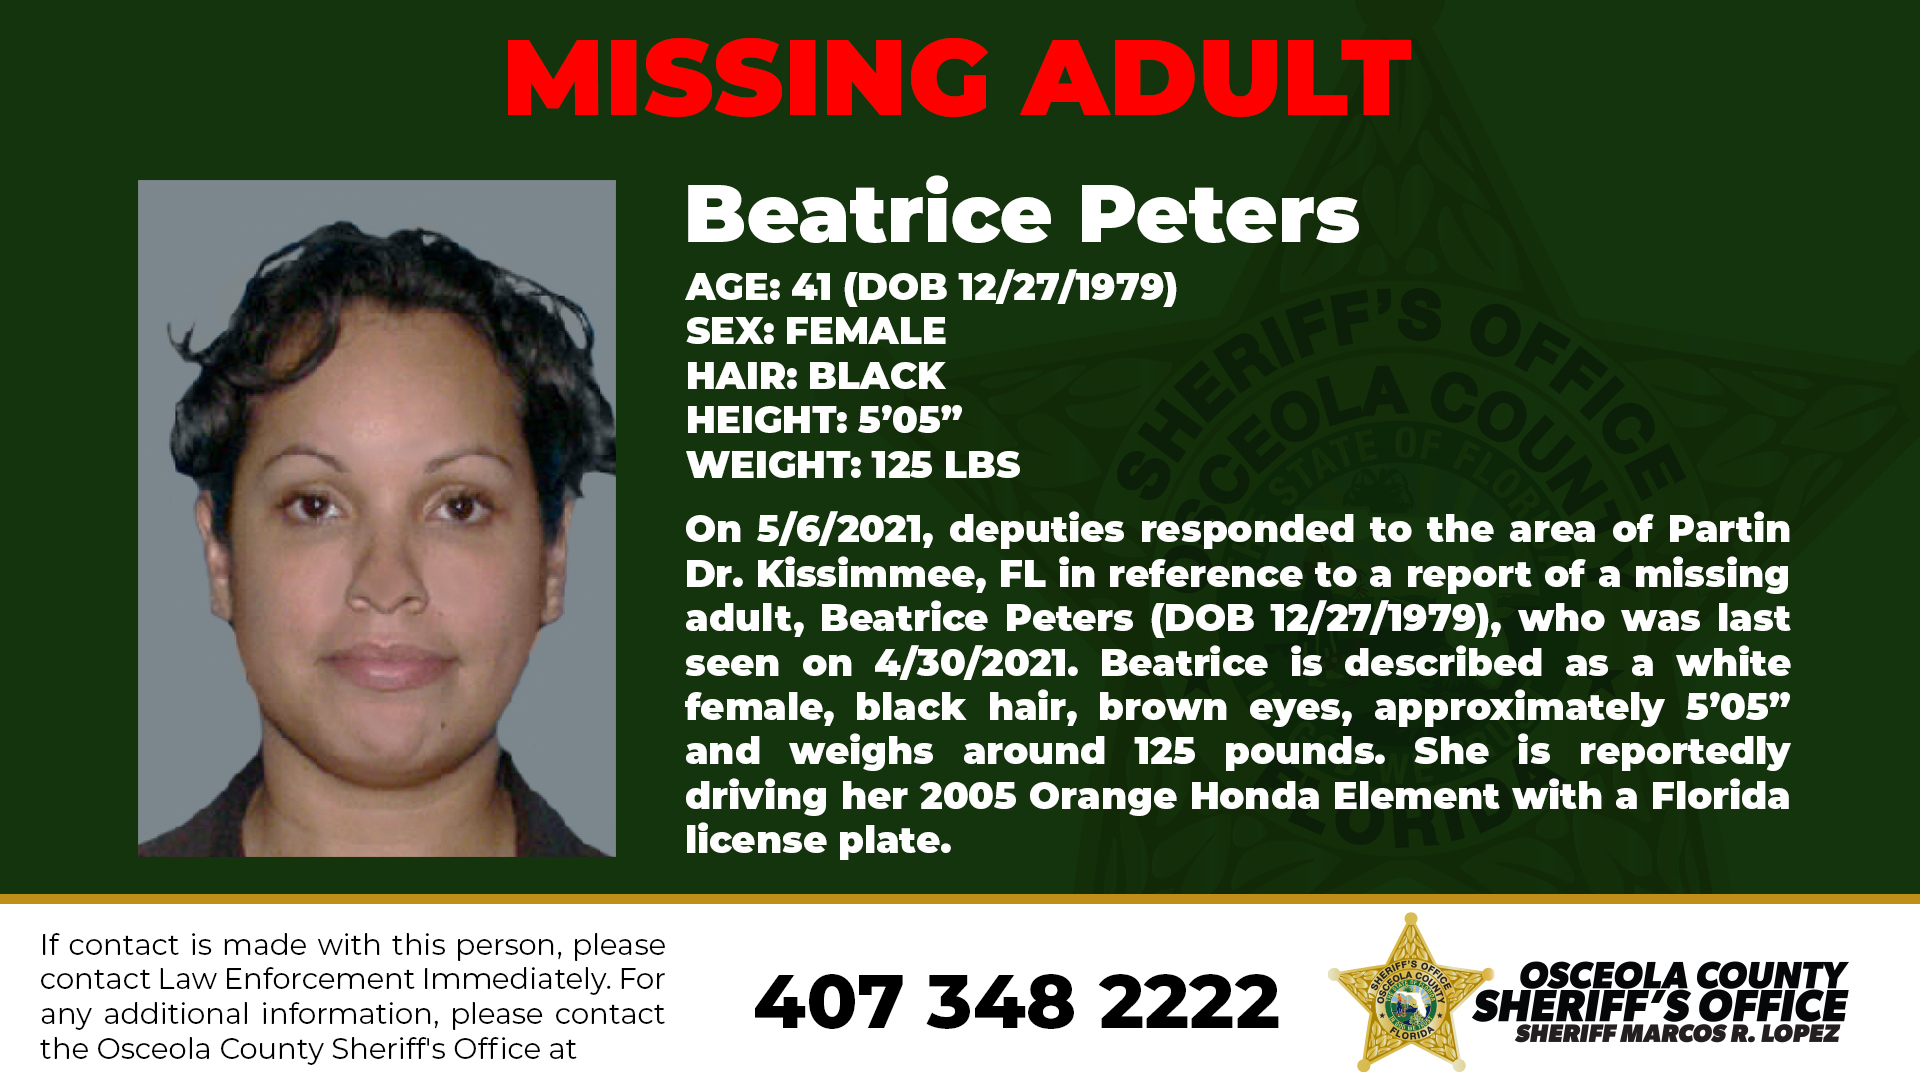 Beatrice Peters - Missing Adult